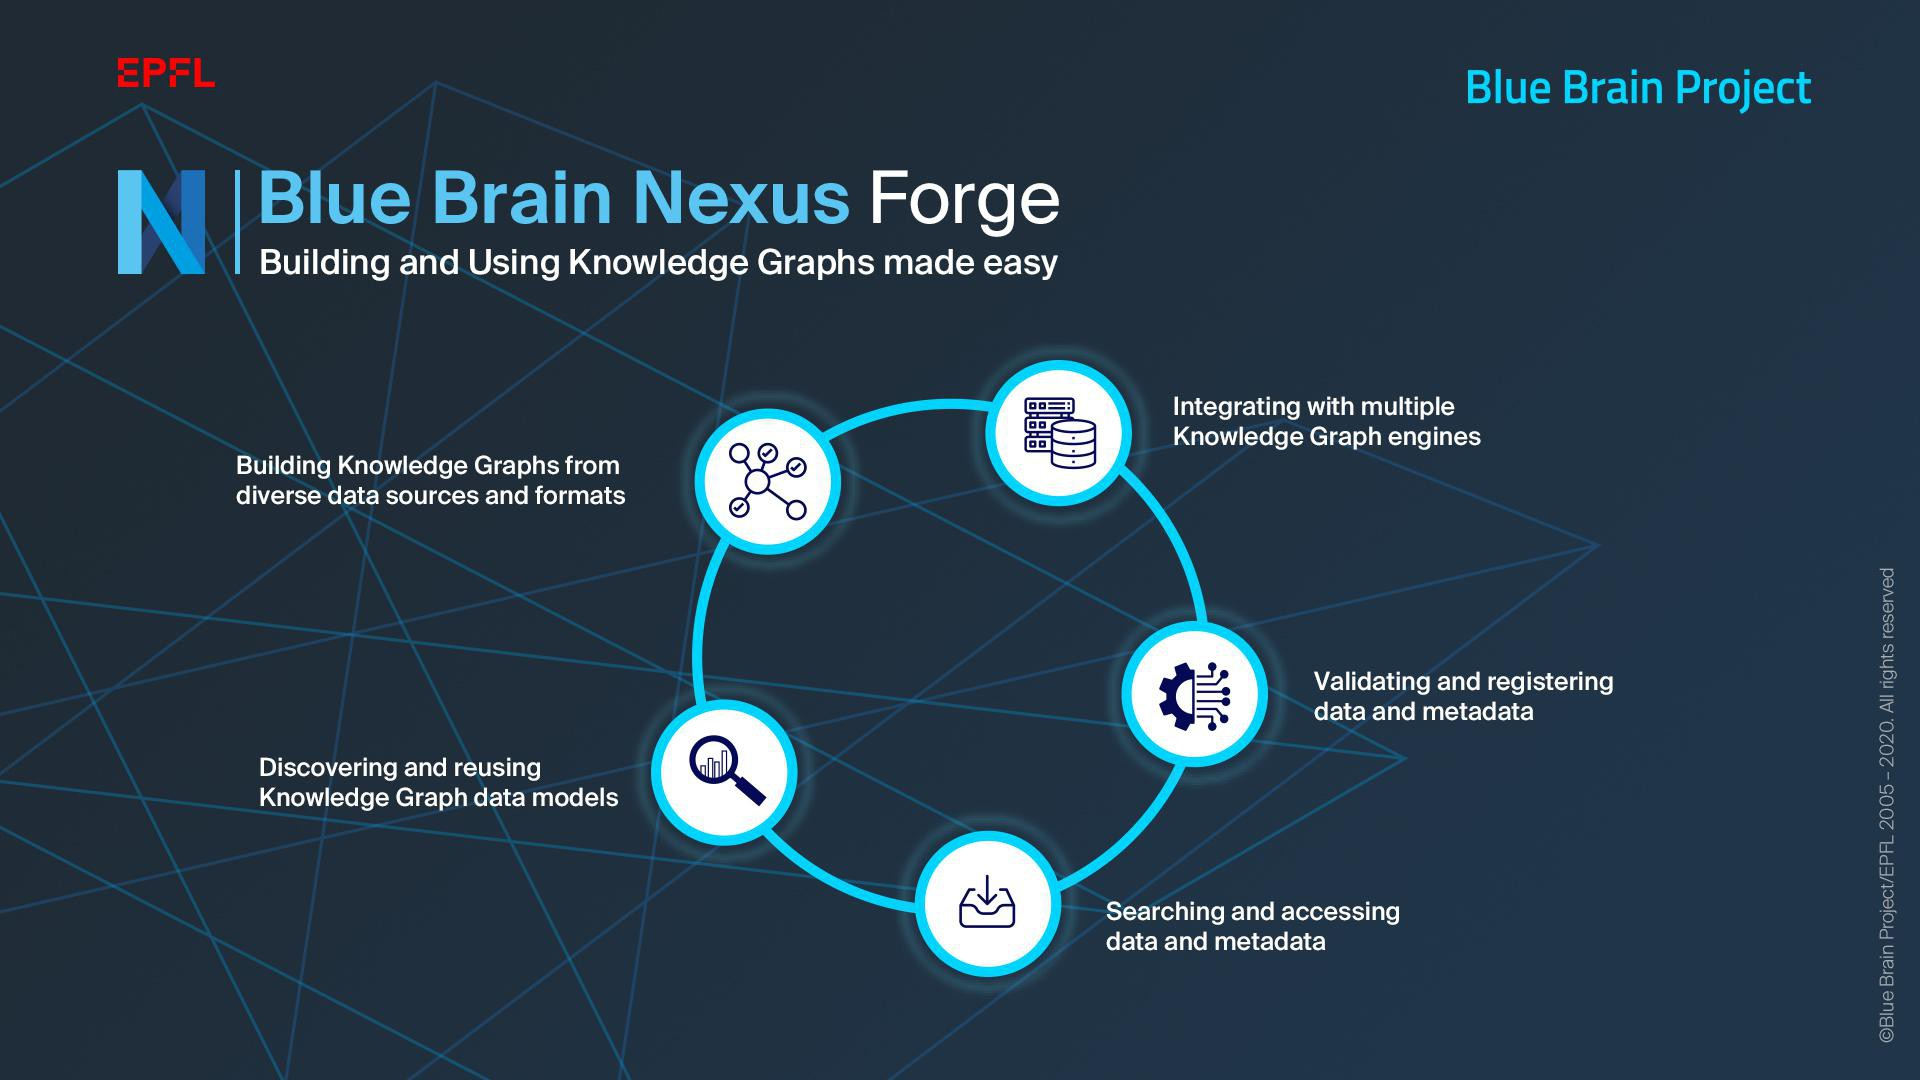 https://raw.githubusercontent.com/BlueBrain/nexus-forge/master/docs/source/assets/bbnforge